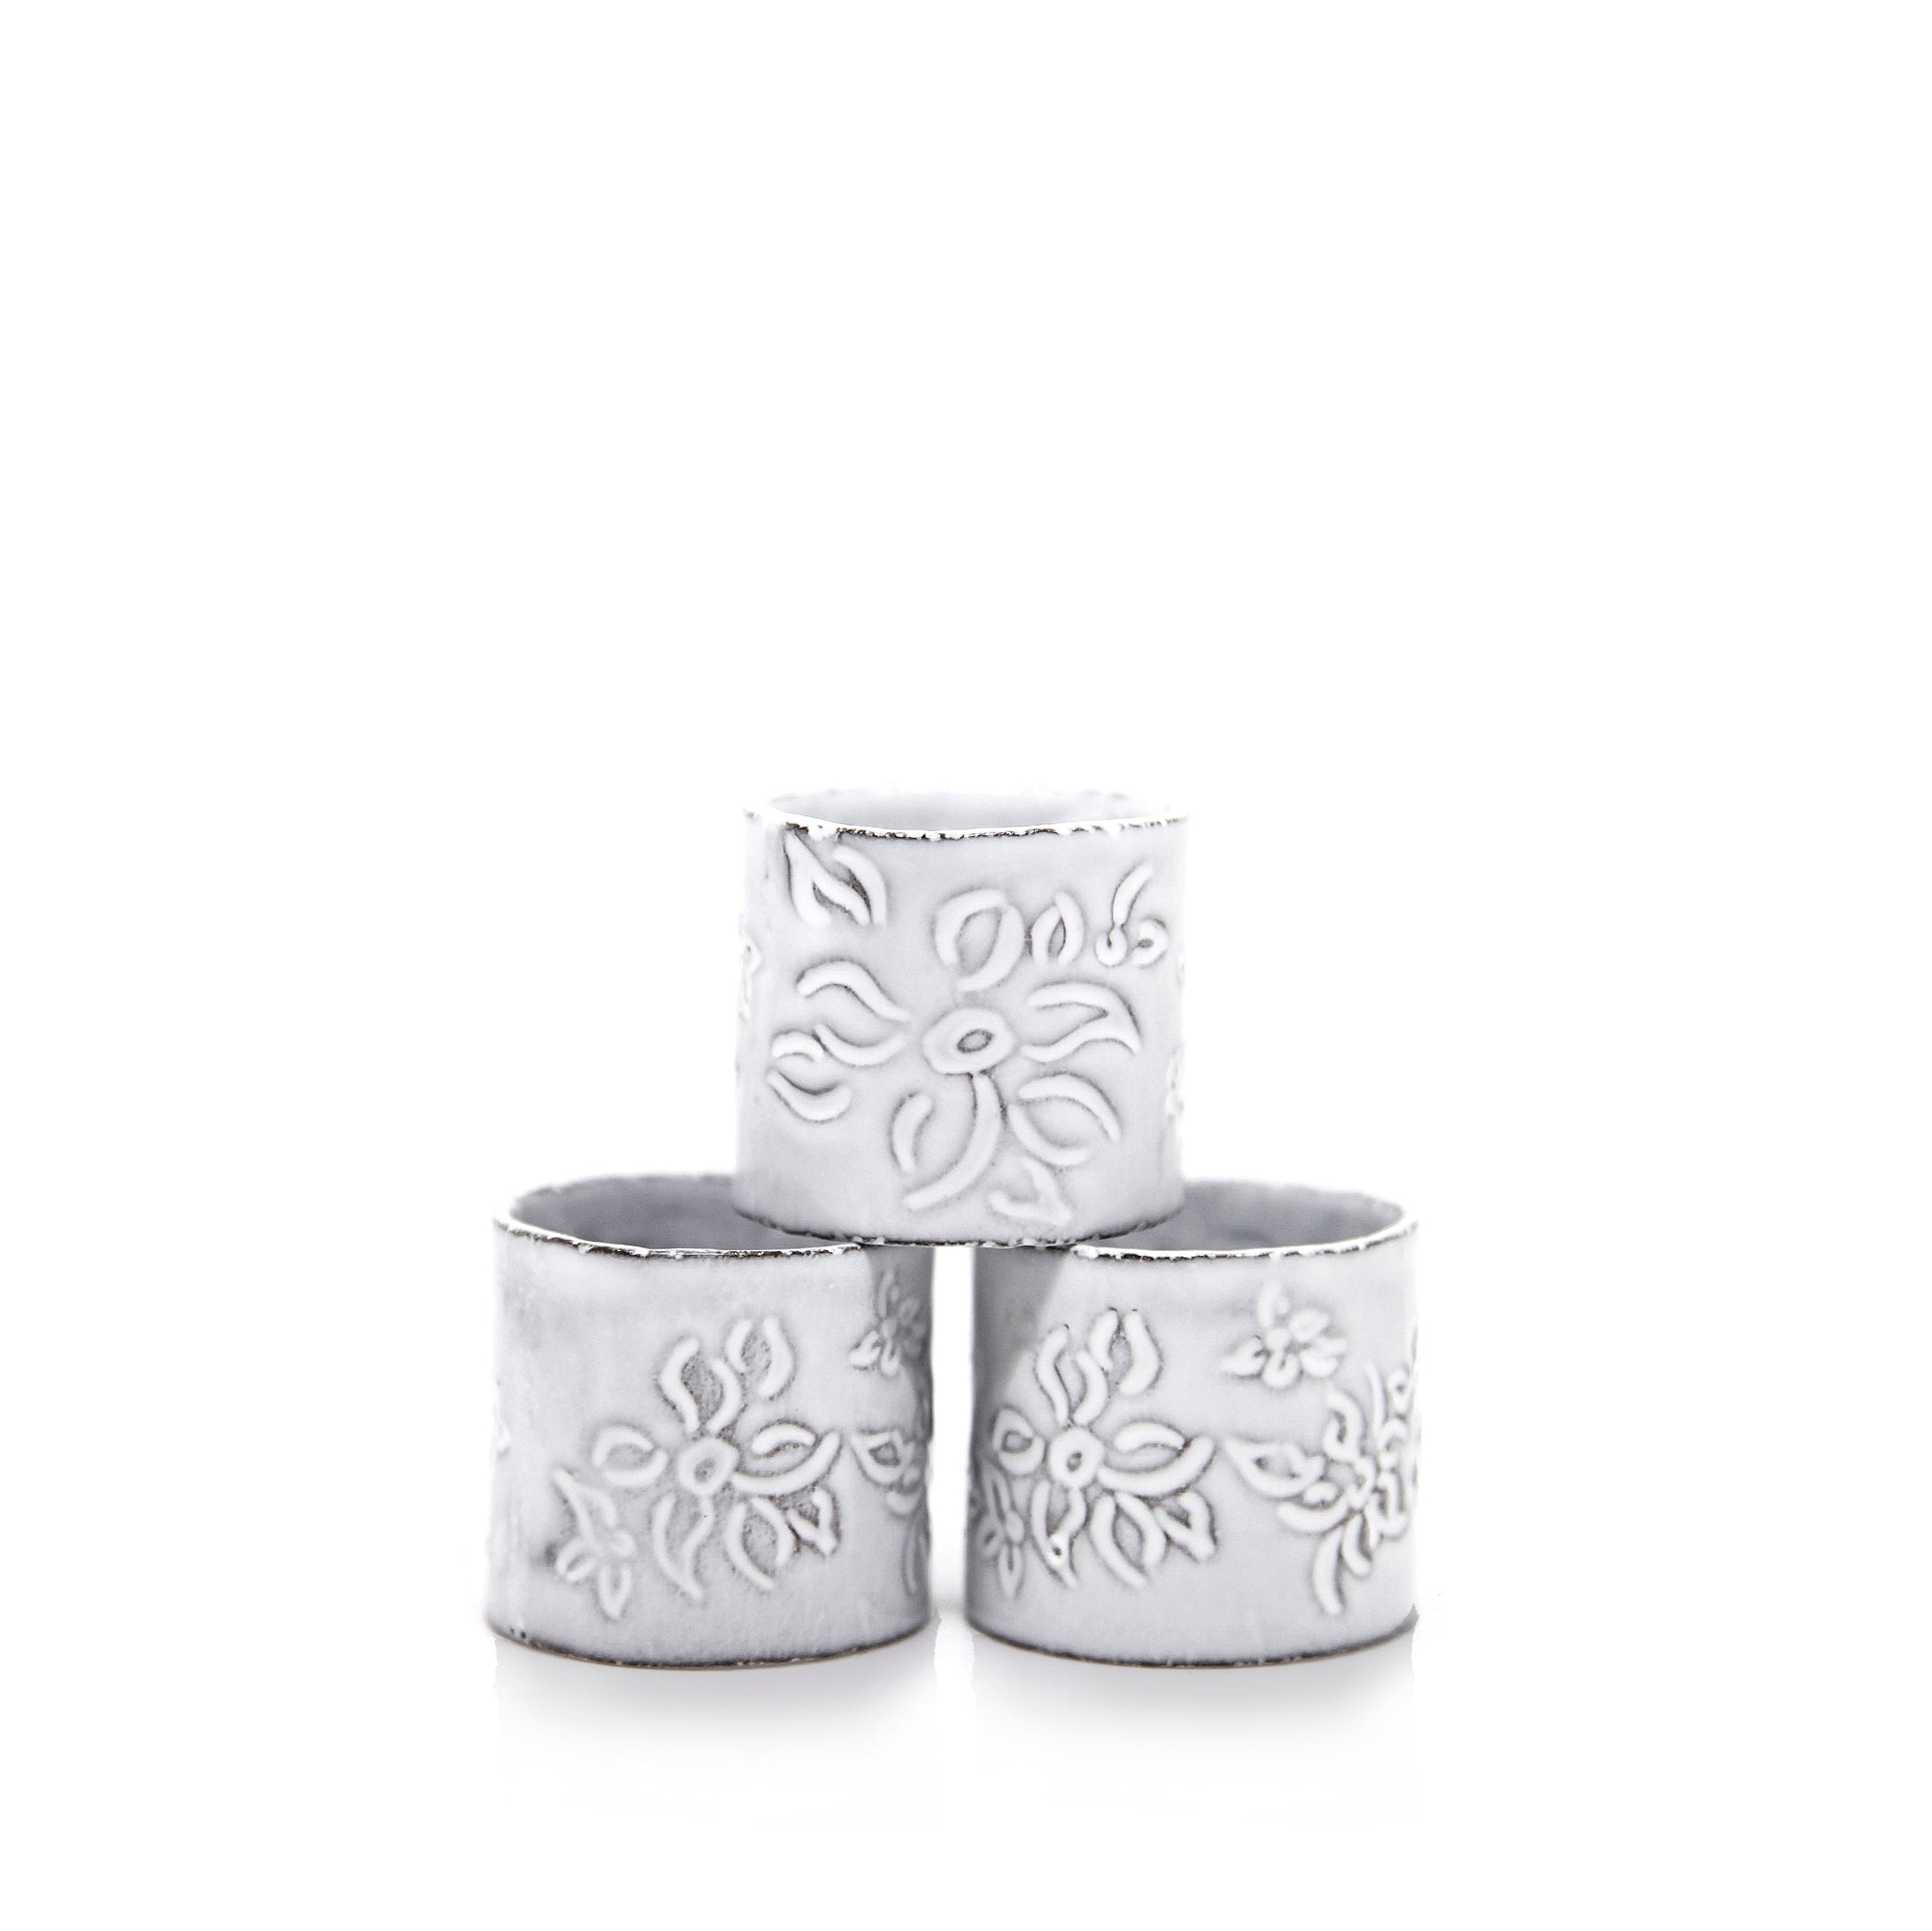 Astier de Villatte x Summerill & Bishop Napkin Ring with Falling Flower